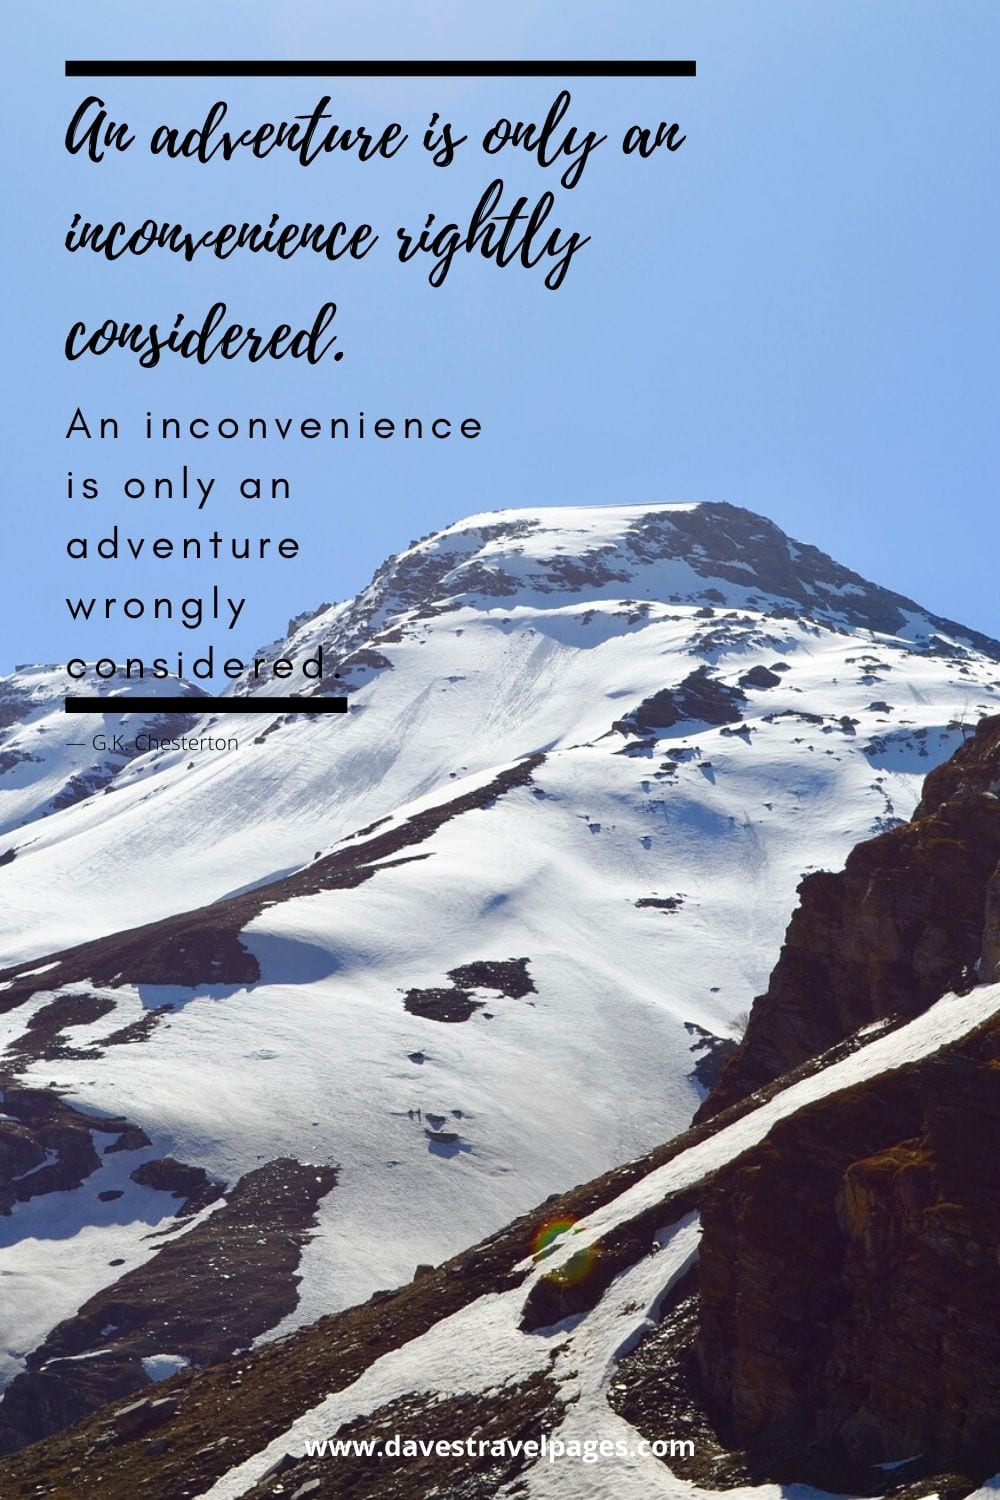 "Funny adventure quote - ""An adventure is only an inconvenience rightly considered. An inconvenience is only an adventure wrongly considered.""― G.K. Chesterton"